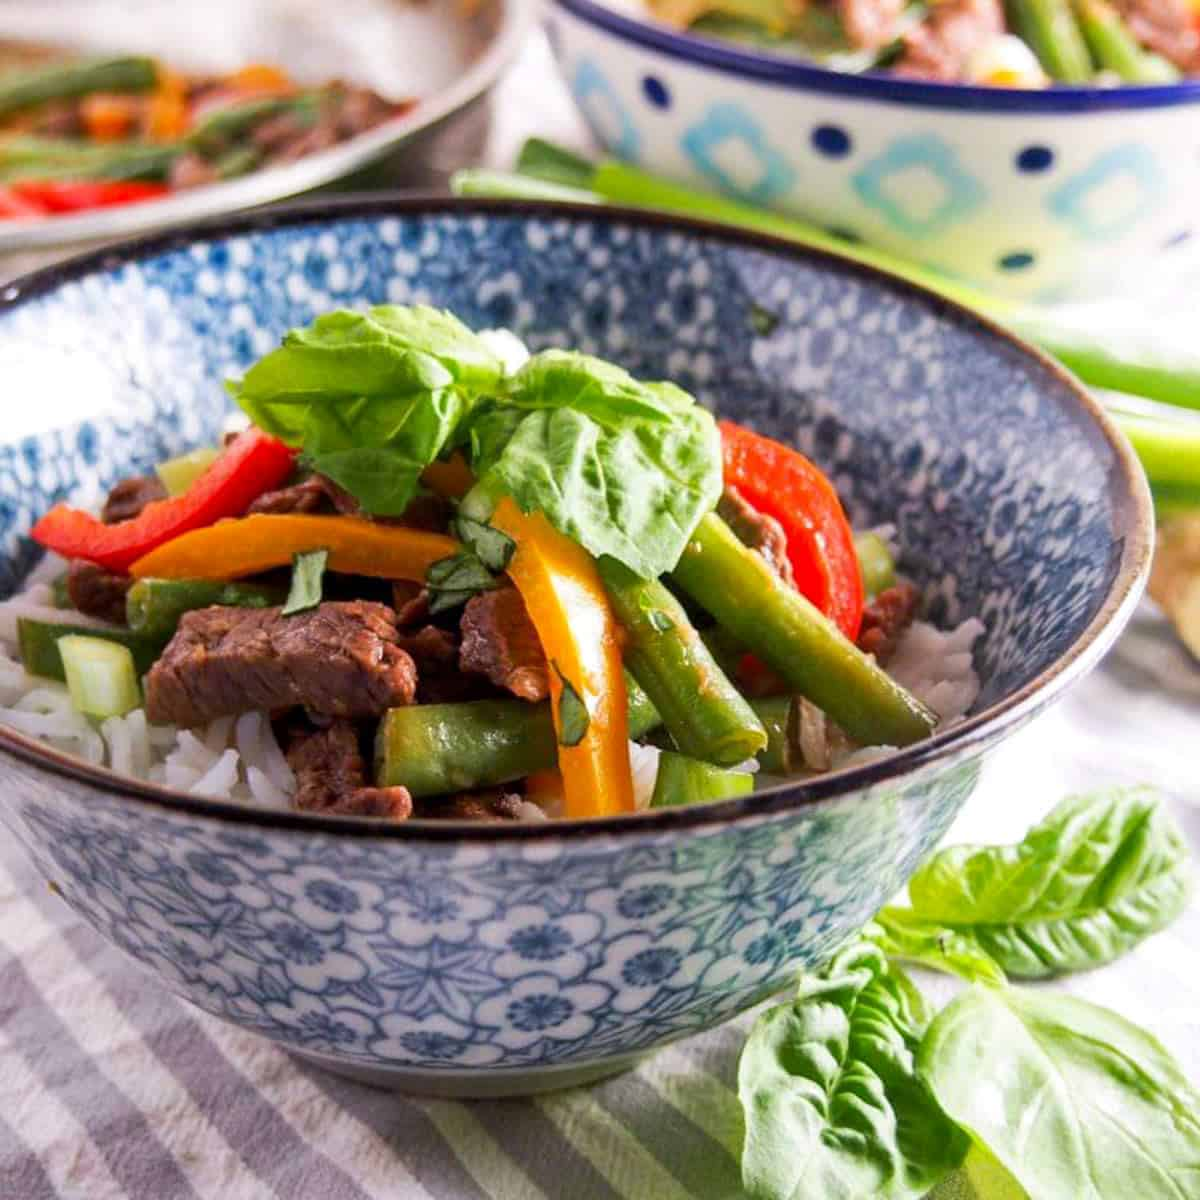 Pepper steak stir fry recipe in a blue and white bowl with fresh basil on top